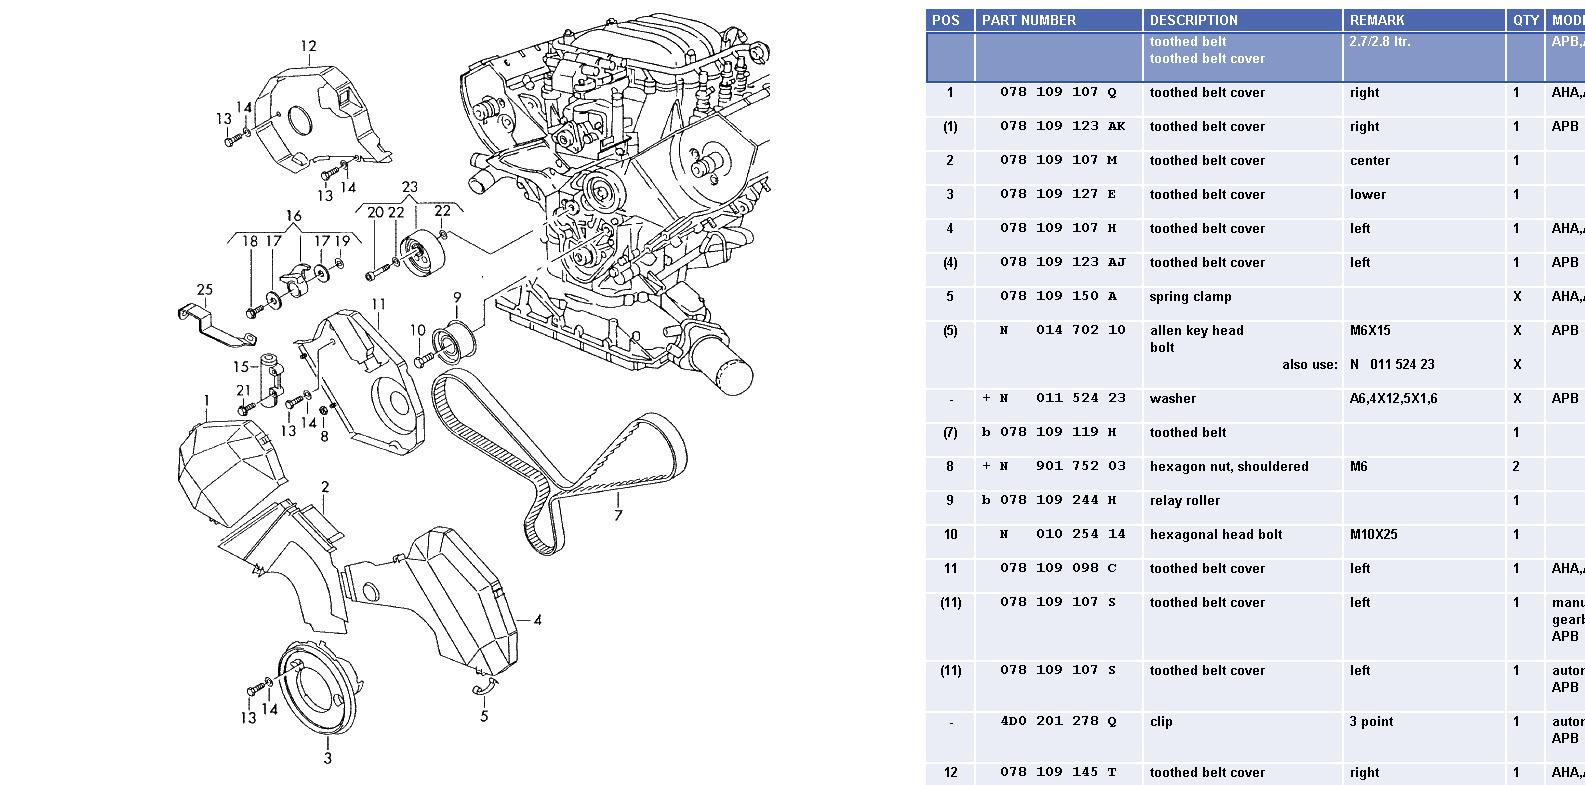 Audi B5 S4 Parts Diagram - Wiring Diagram Data Schema  Audi S Wiring Diagram on 01 mitsubishi eclipse wiring diagram, 01 chevy malibu wiring diagram, 01 dodge dakota wiring diagram,